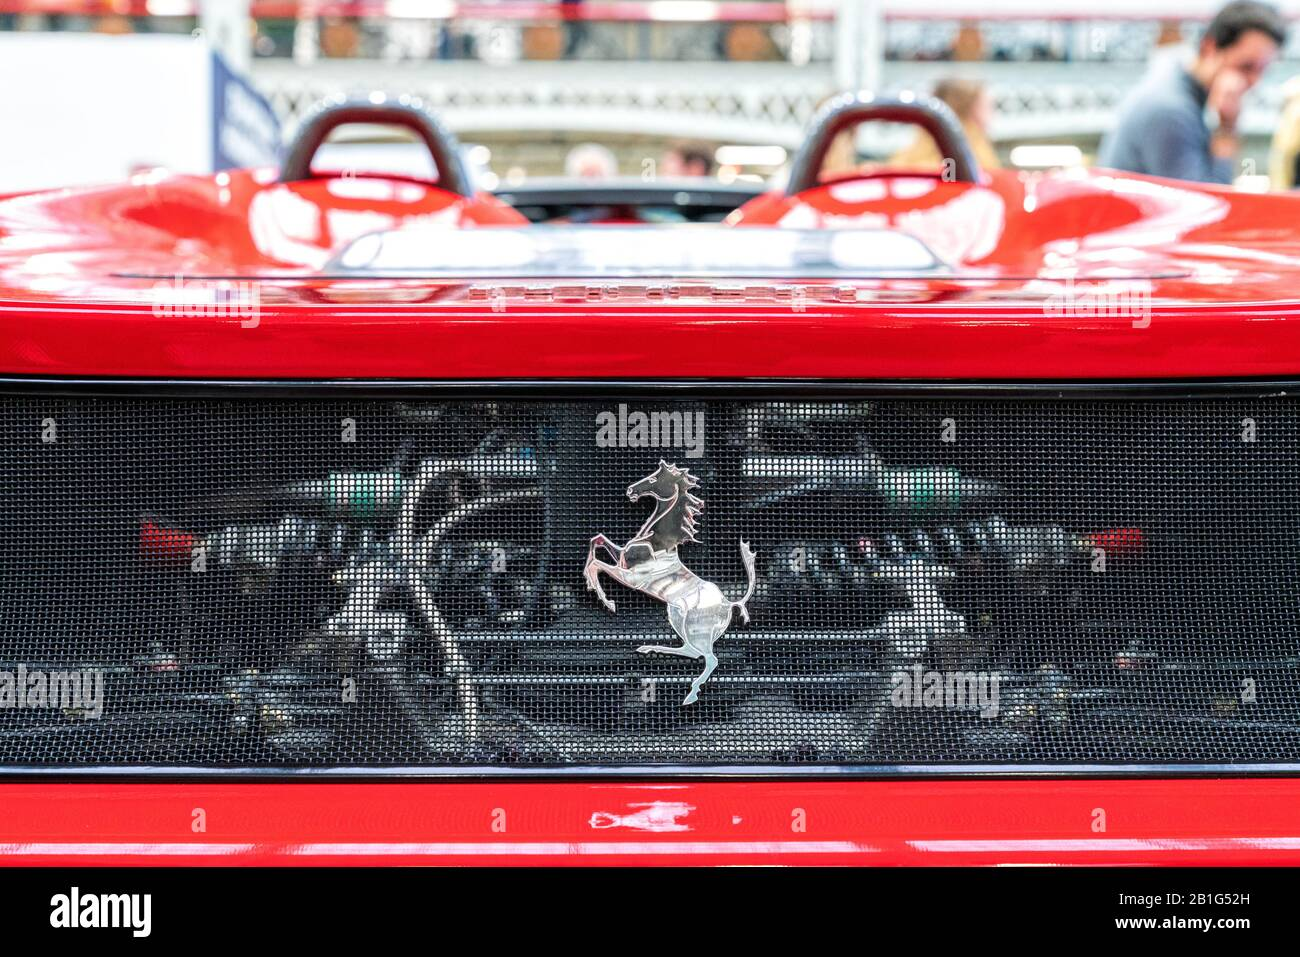 22 Feb 2020 - London, UK. Ferrari emblem and see-through mesh to an engine compartment. Stock Photo